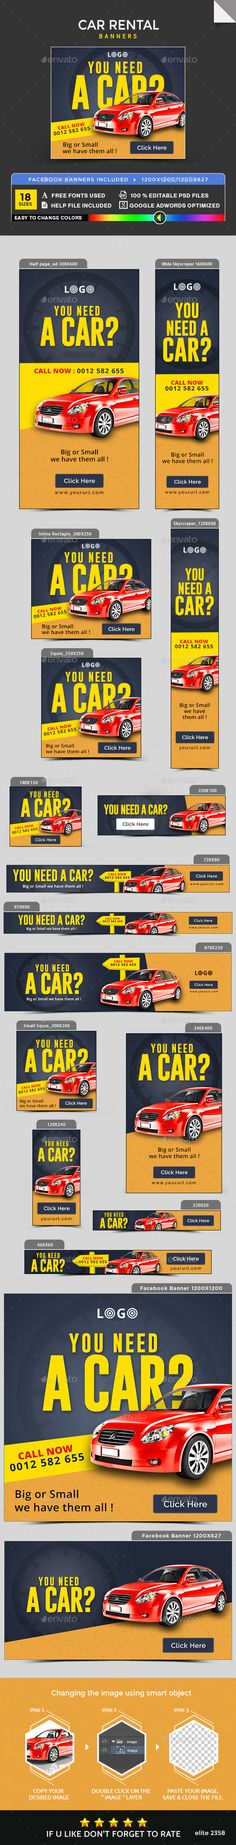 Car Rental Banners Banners, Template and Ads - car ad template